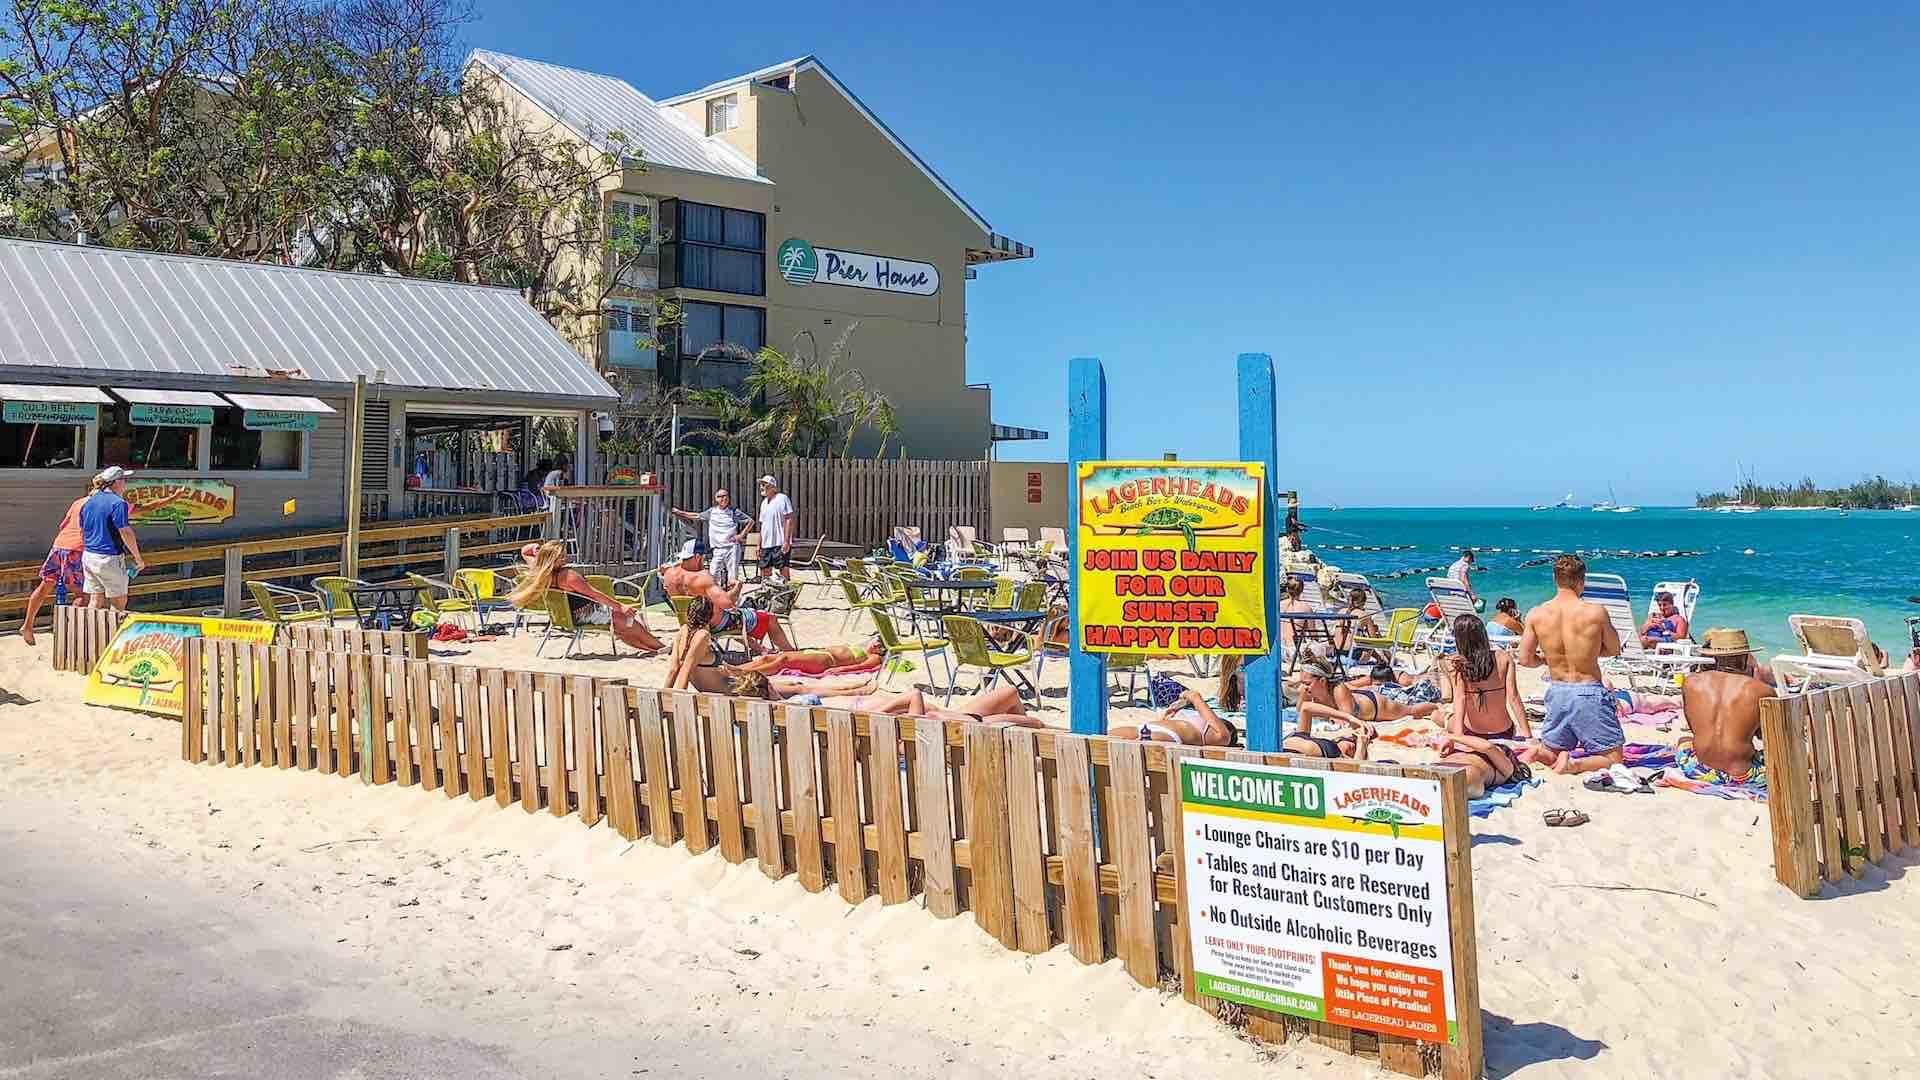 Missing a pool? Contact Last Key Concierge for info about Simonton Beach passes...